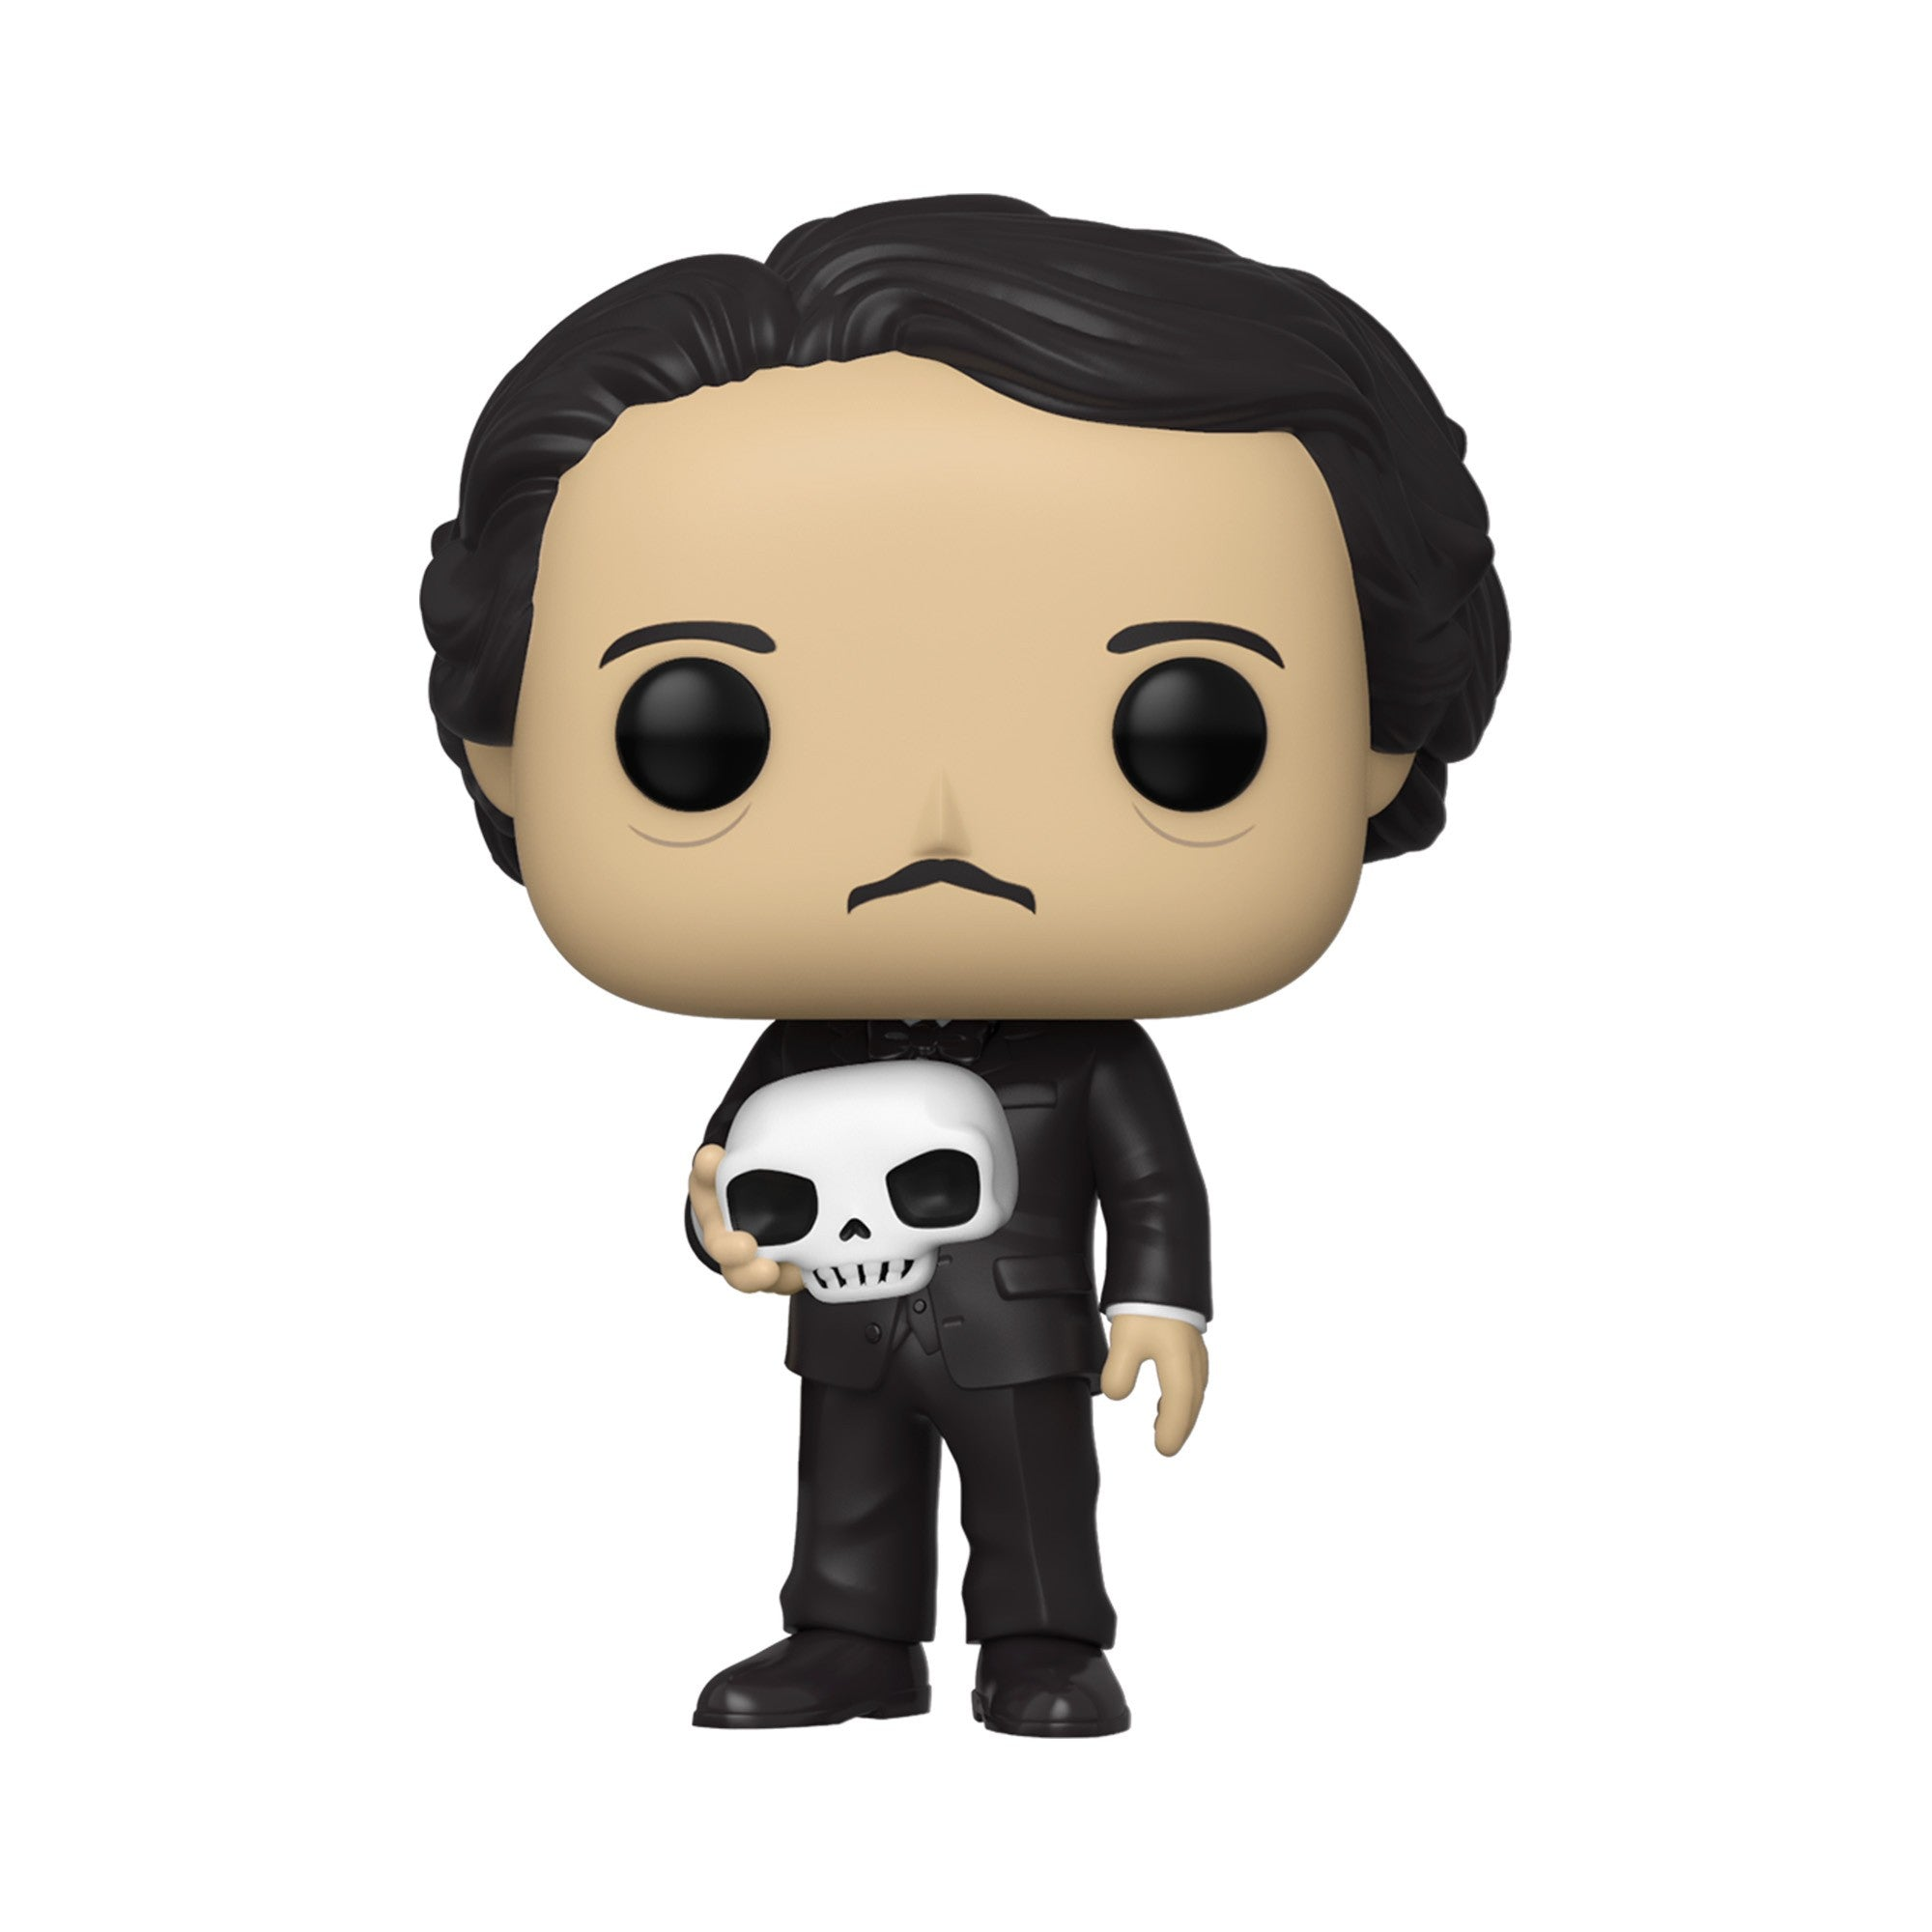 Edgar Allan Poe with Skull